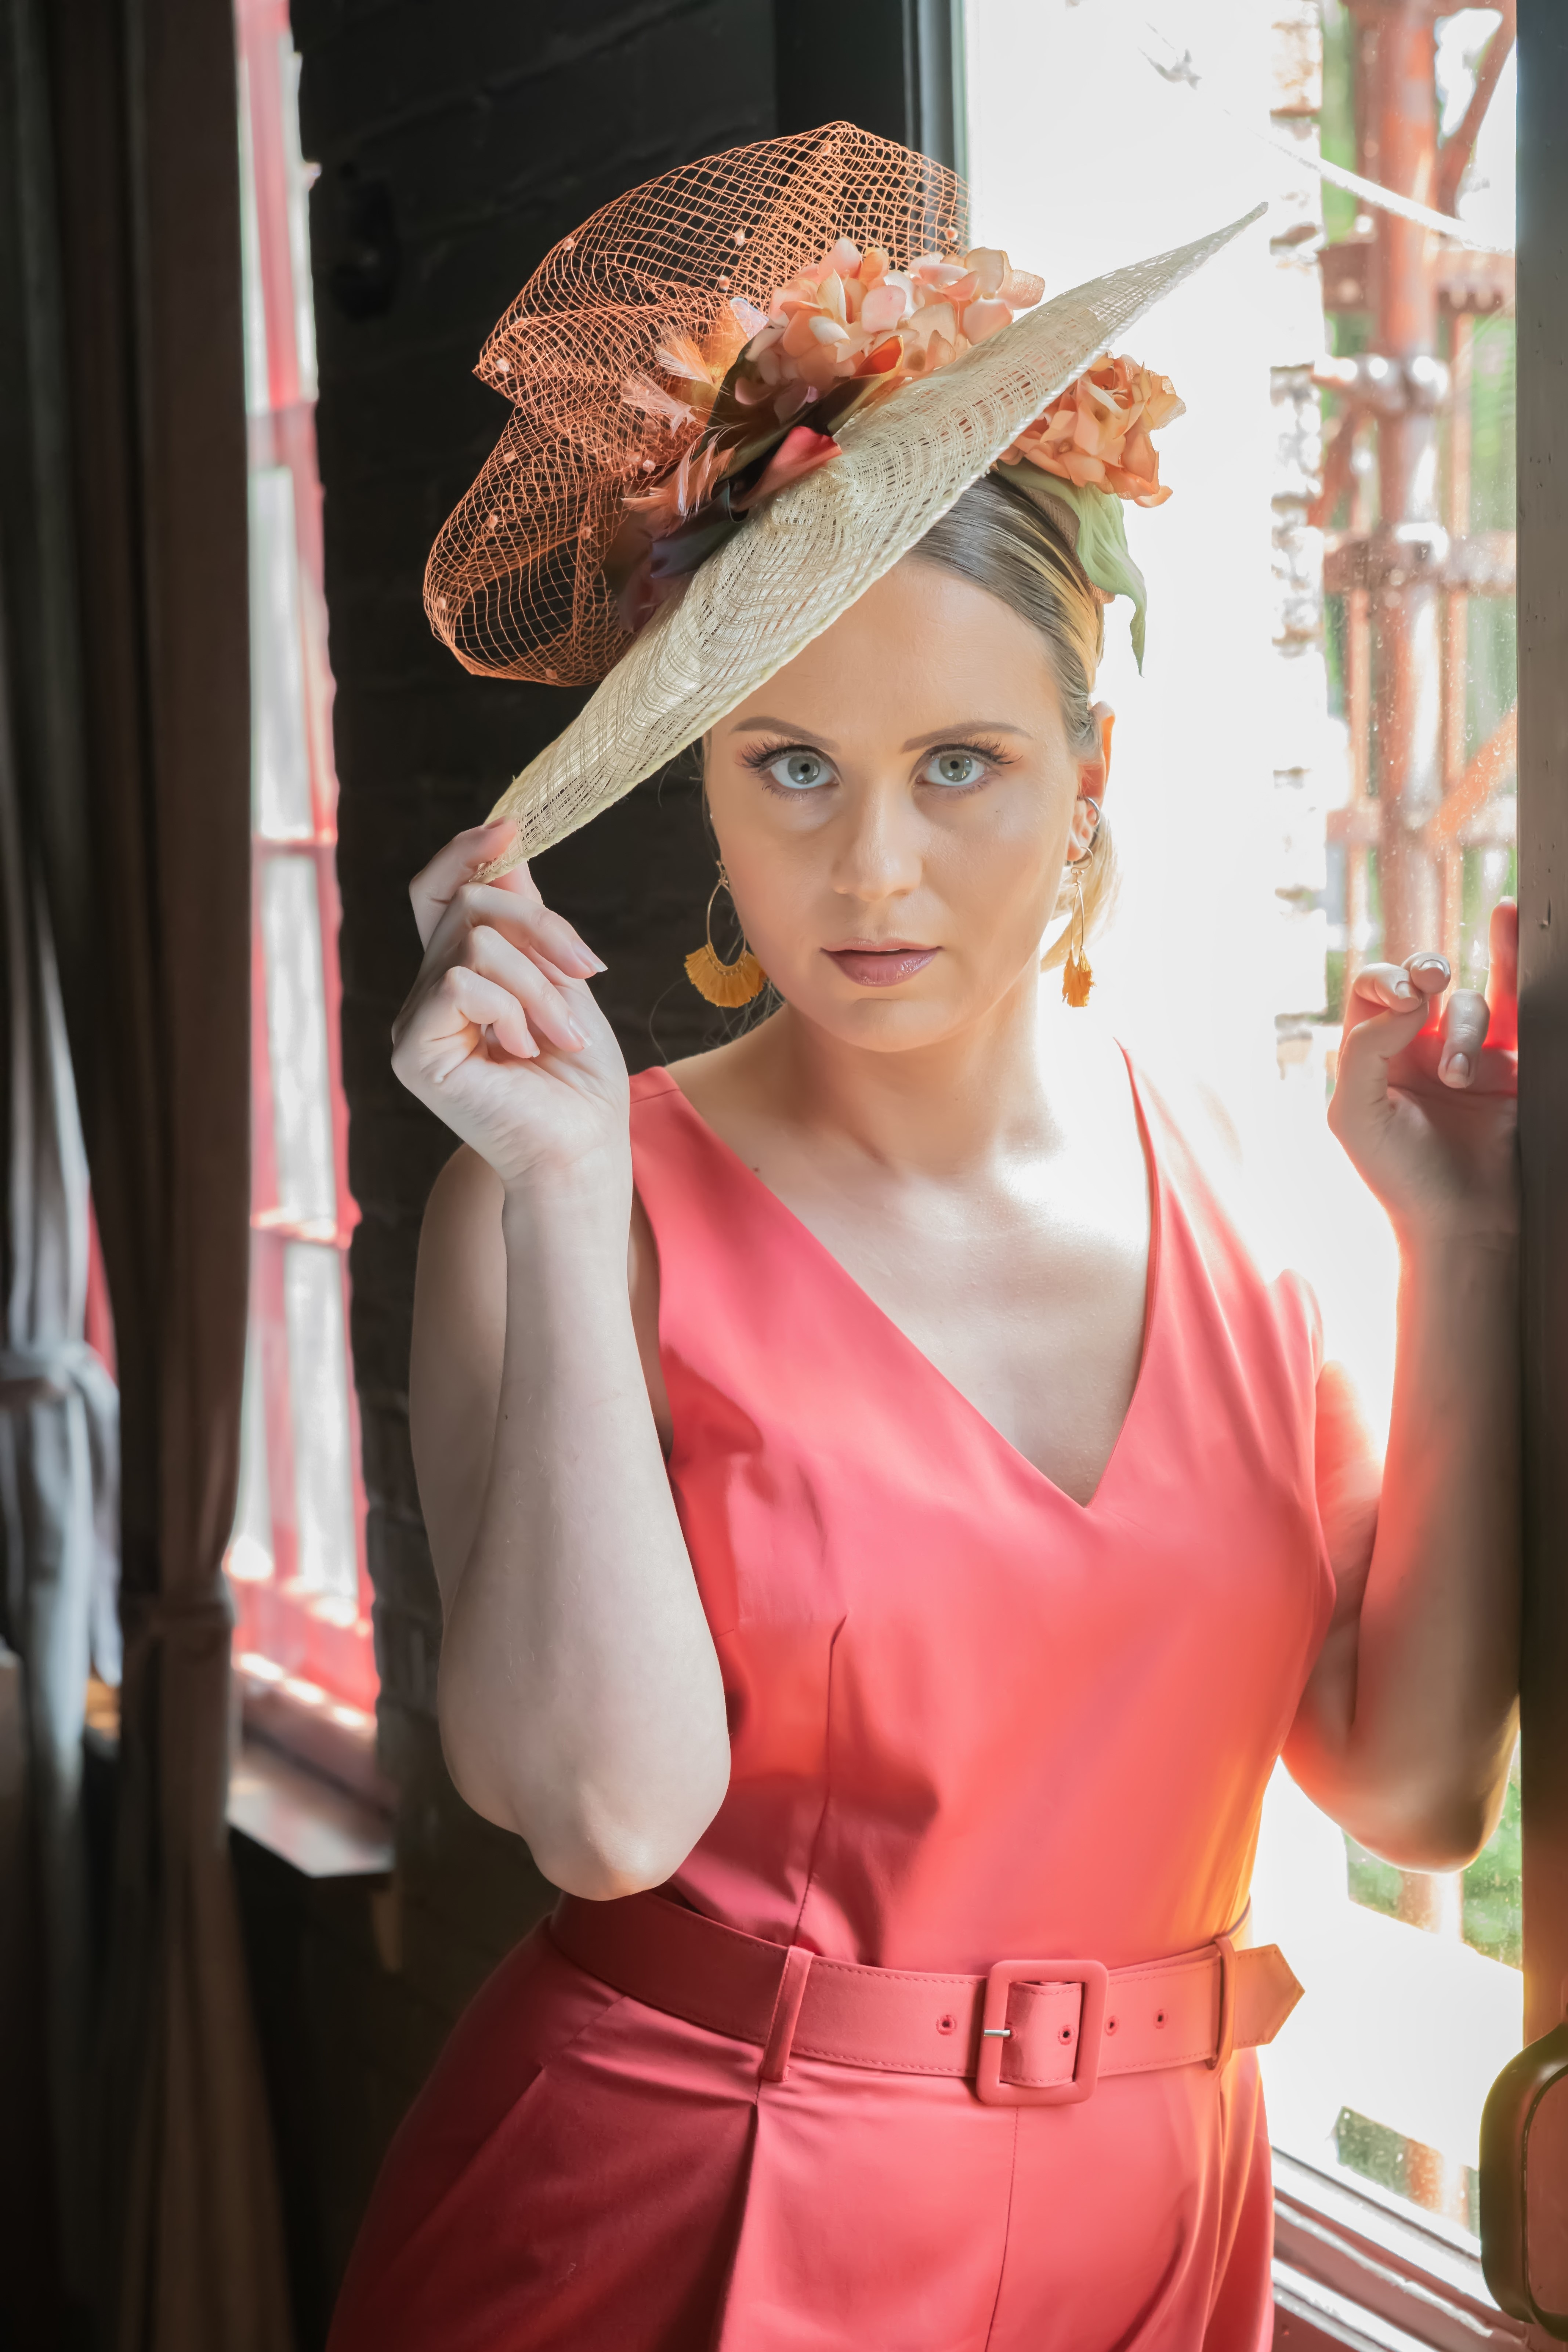 Model Sindel Taylor showing off a custom hat designed for this styled shoot by What A Great Hat based in Akron, Ohio